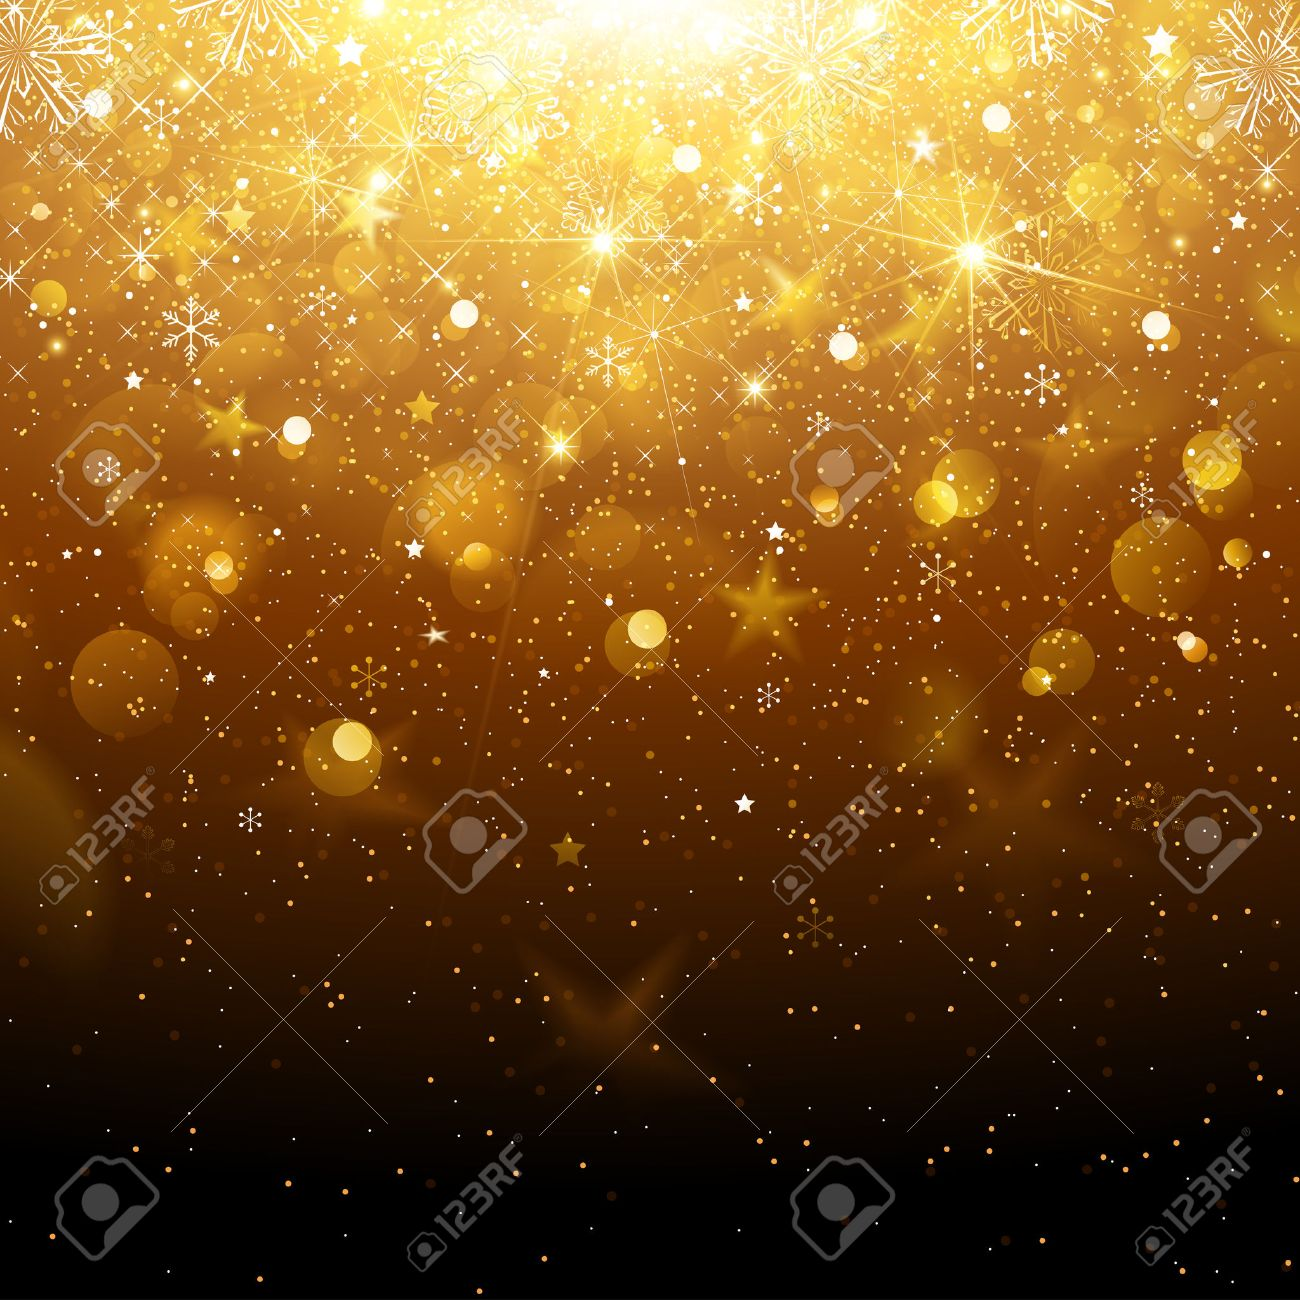 Christmas Gold Background with Snowflakes and Snow. Vector illustration - 46976640